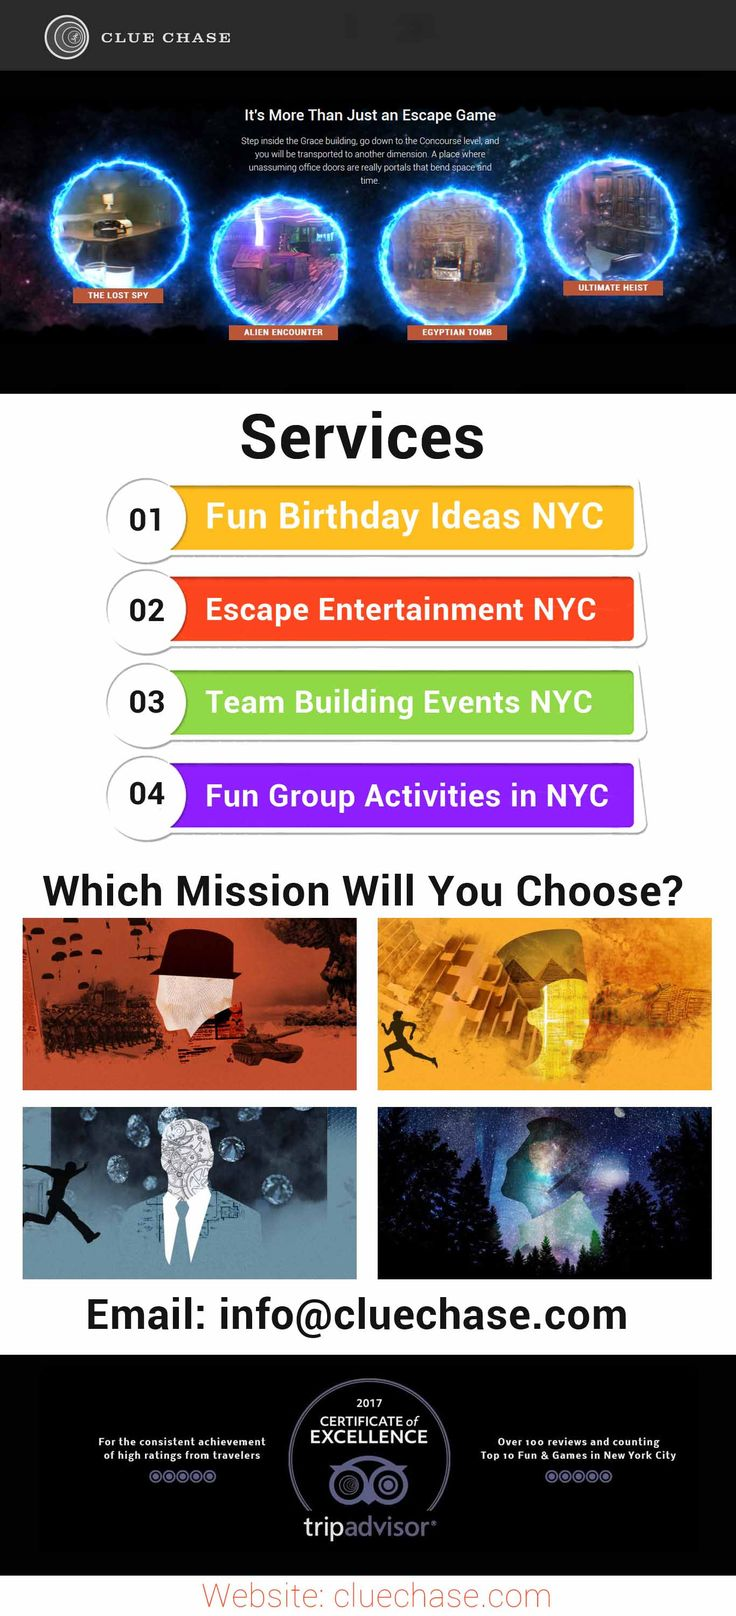 Experience the highest level of fun, adventure and enjoyment along with sharp your observation skills by taking full pleasure of fun group activities at Clue Chase in NYC. We offer the perfect team building activity for groups up to 100 or more which is suitable for law-firms, accounting firms, consultancies, schools and any group looking for a unique and fun experience.